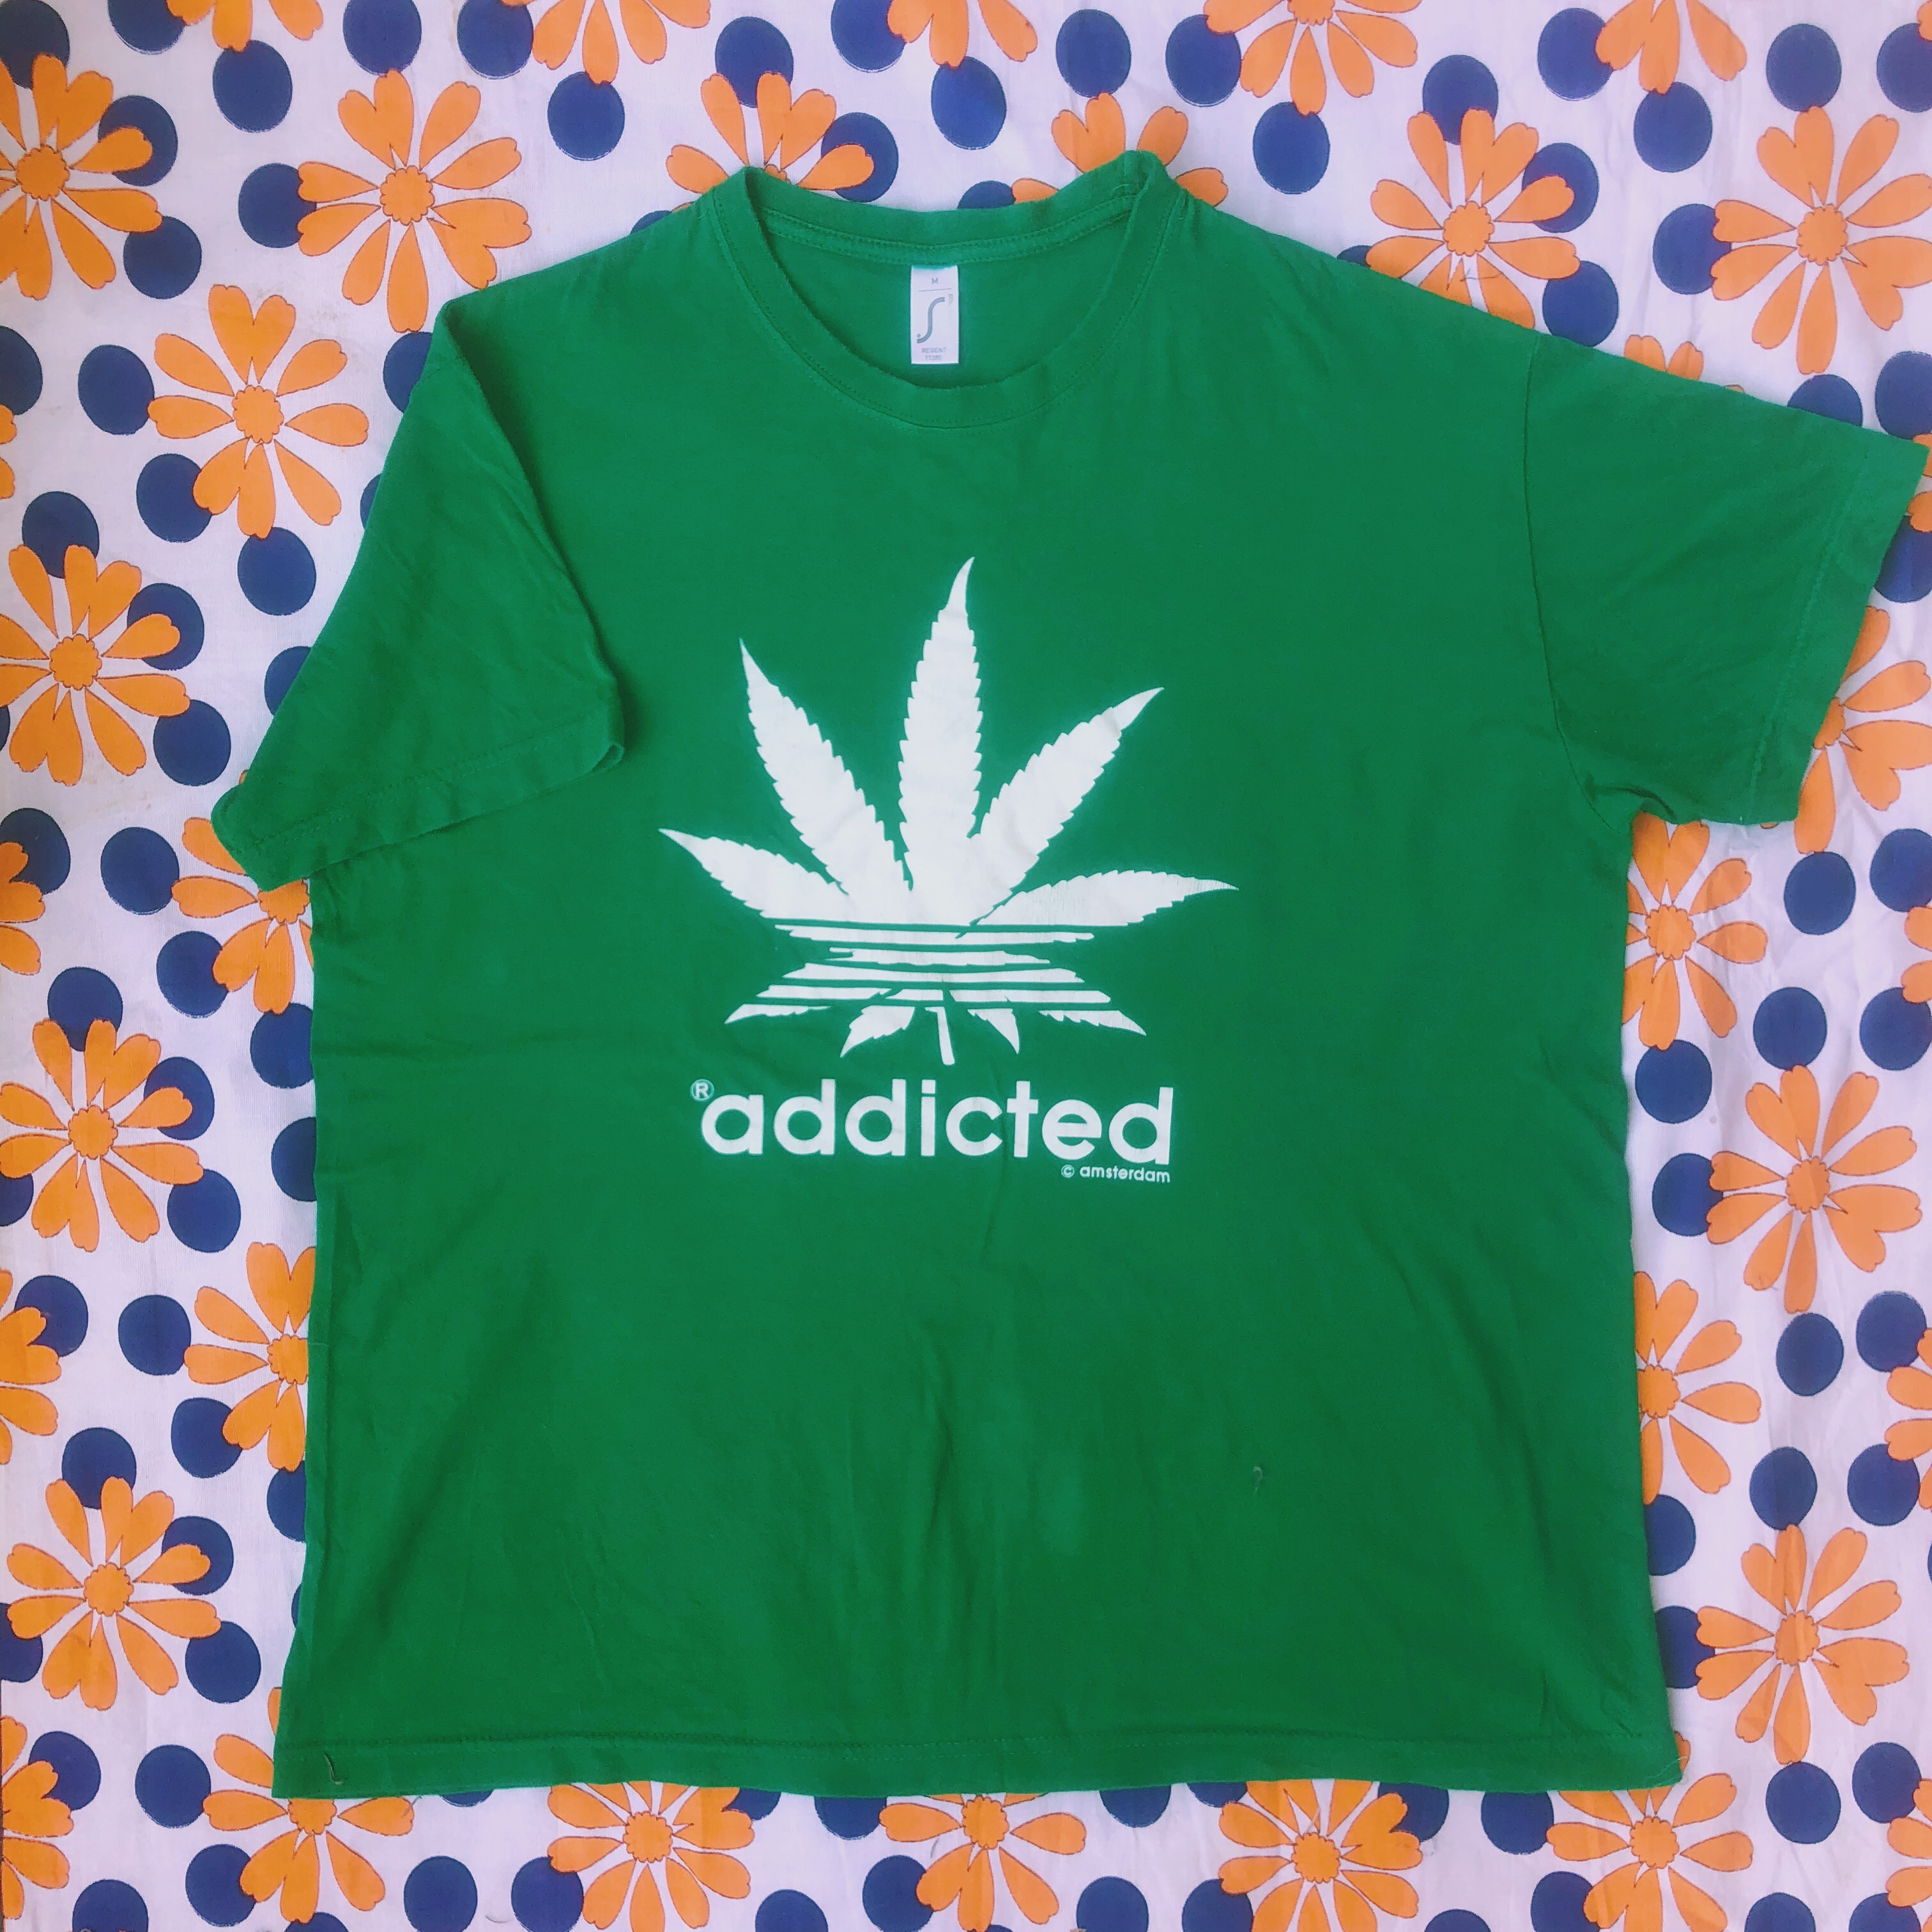 beauty lower price with new high quality Fake Adidas Amsterdam T-Shirt $11 w/ Free... - Depop